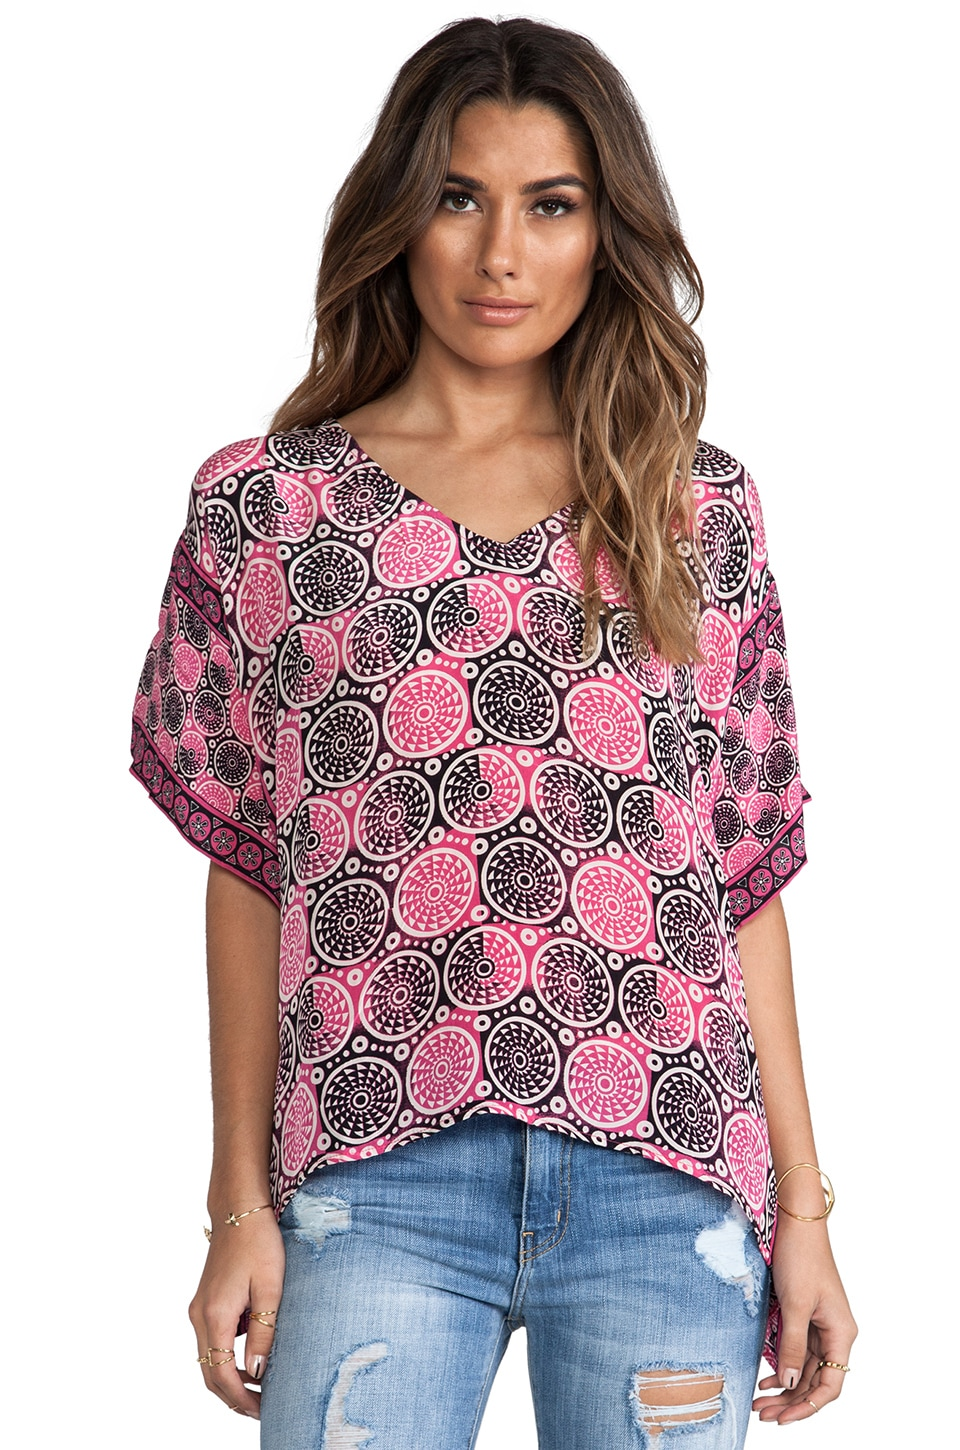 Tolani Brianna Blouse in Pink Circles